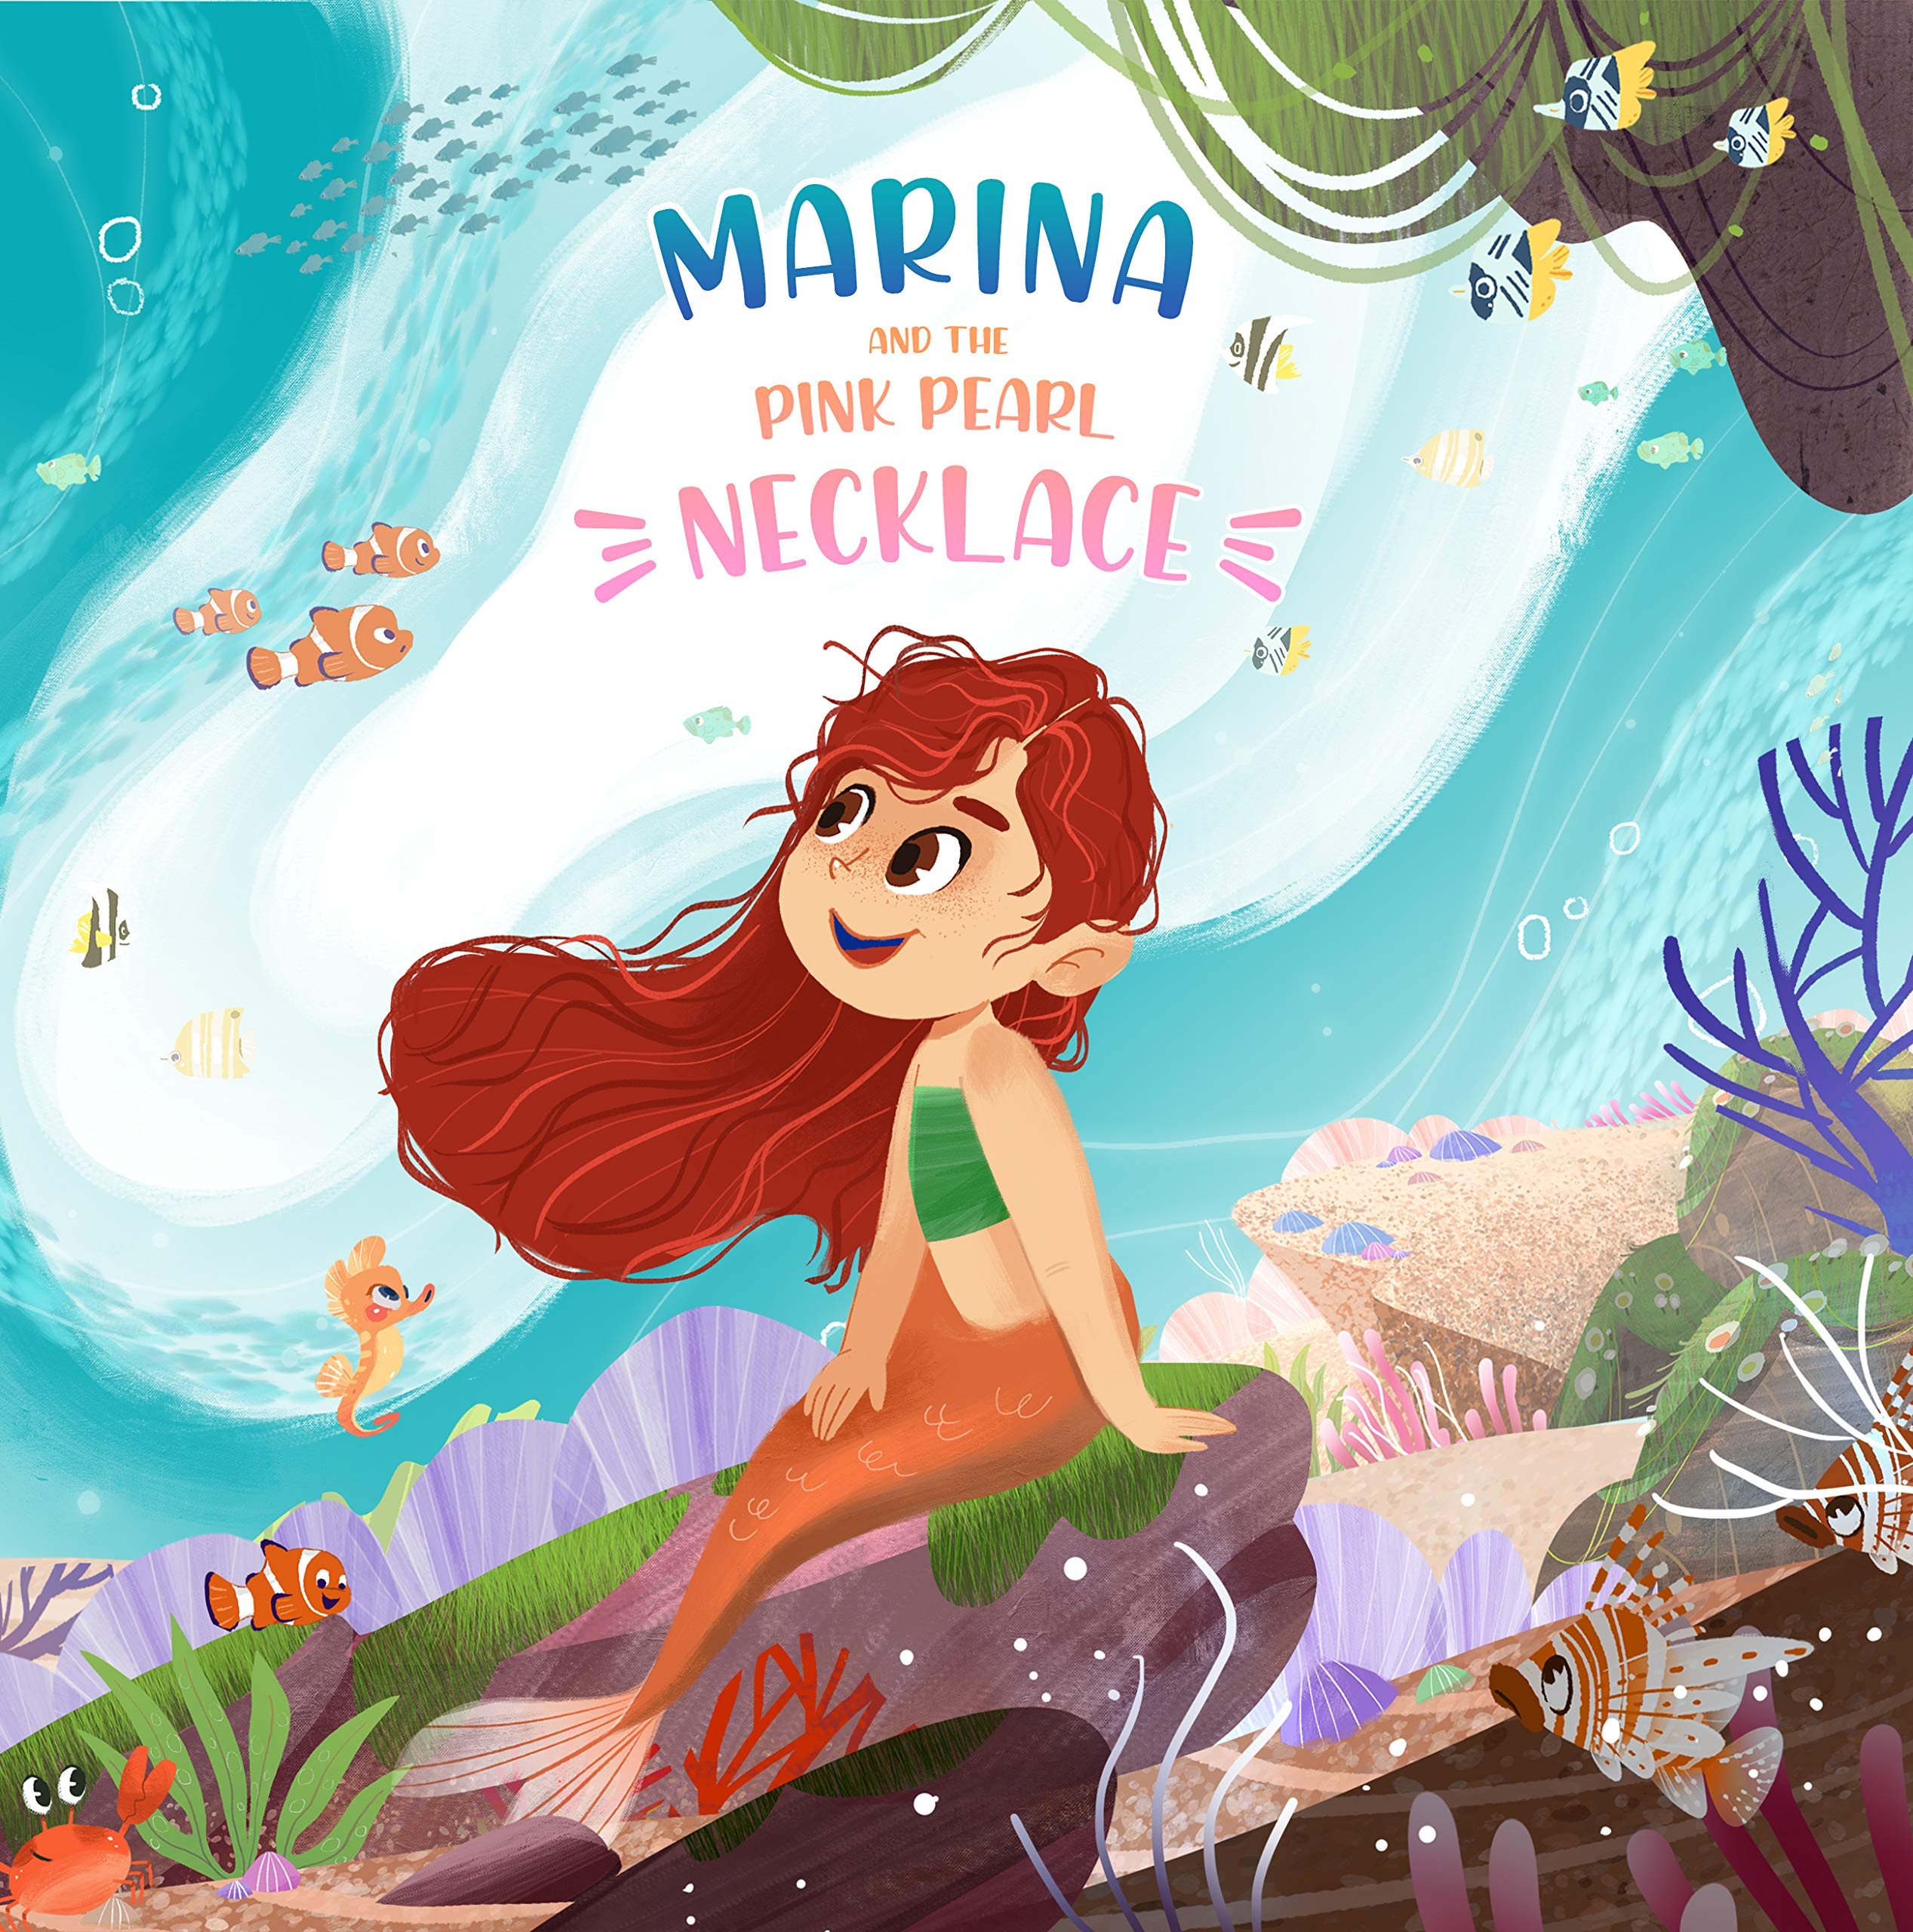 Marina & The pink pearl necklace: Mermaid Tales, Fantasy, Grow up, Friendship books for girls